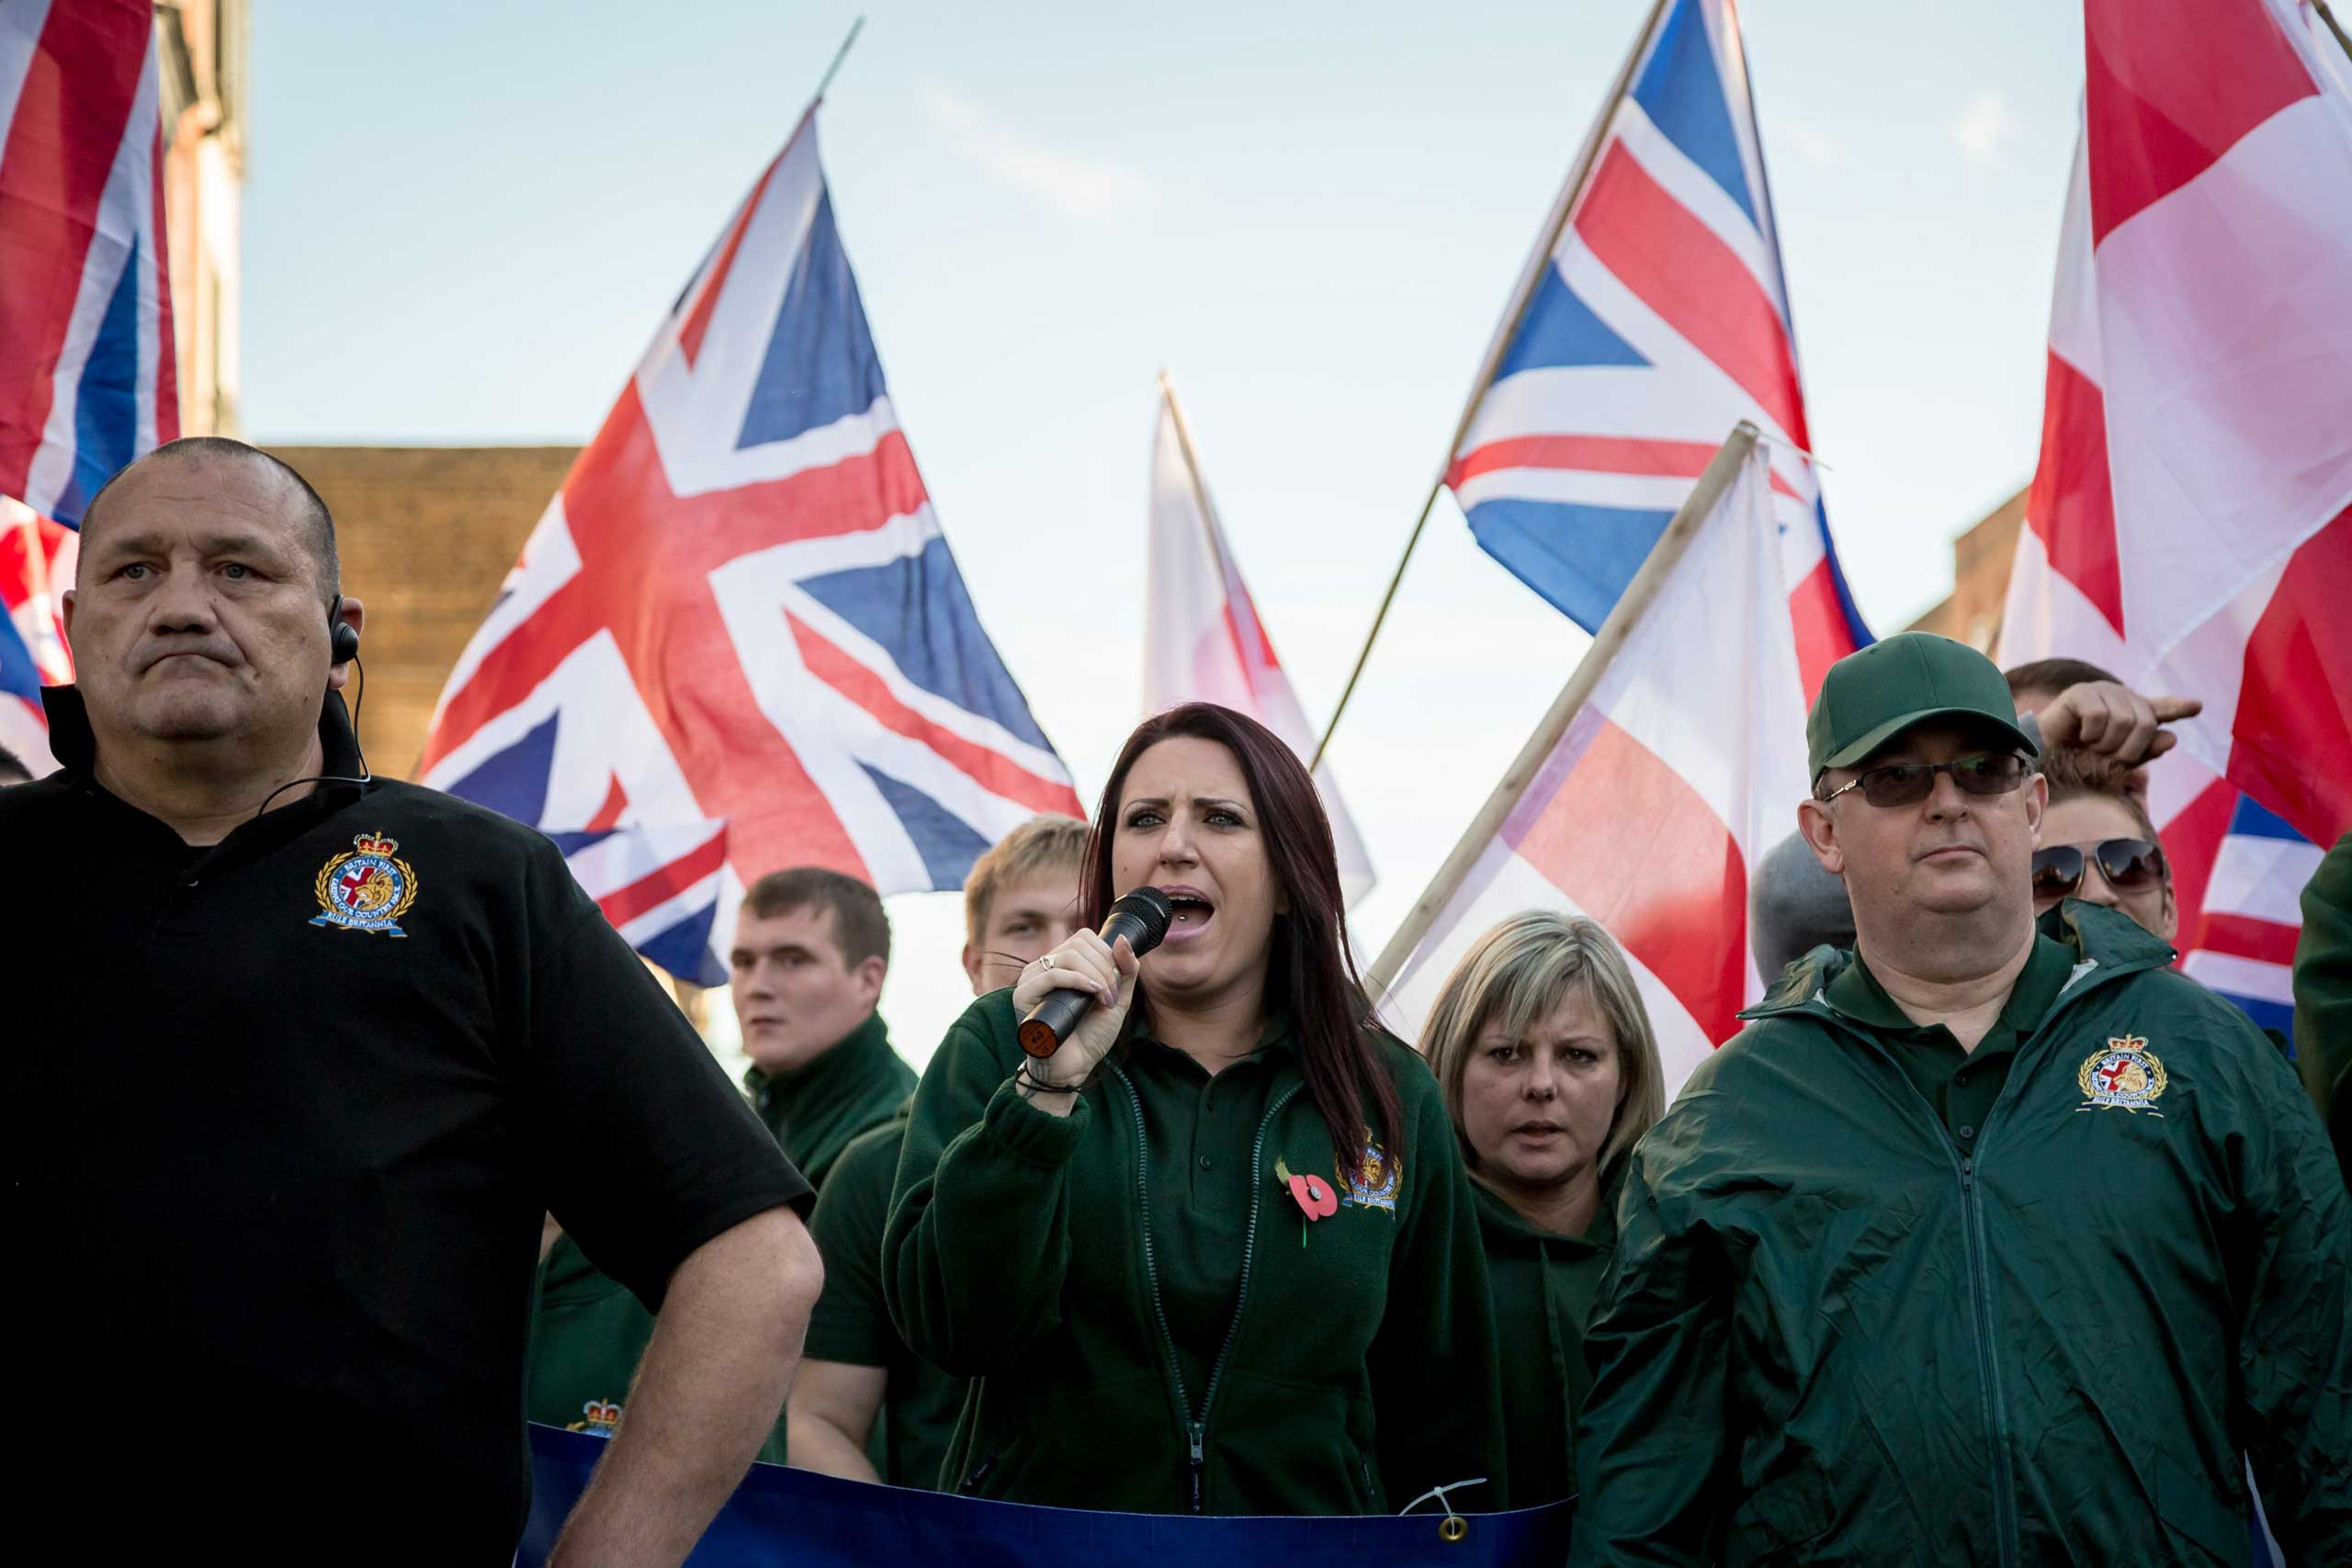 Jayda Fransen, deputy leader of Britain First, speaks during a march in Rochester, England, Nov. 1, 2014.